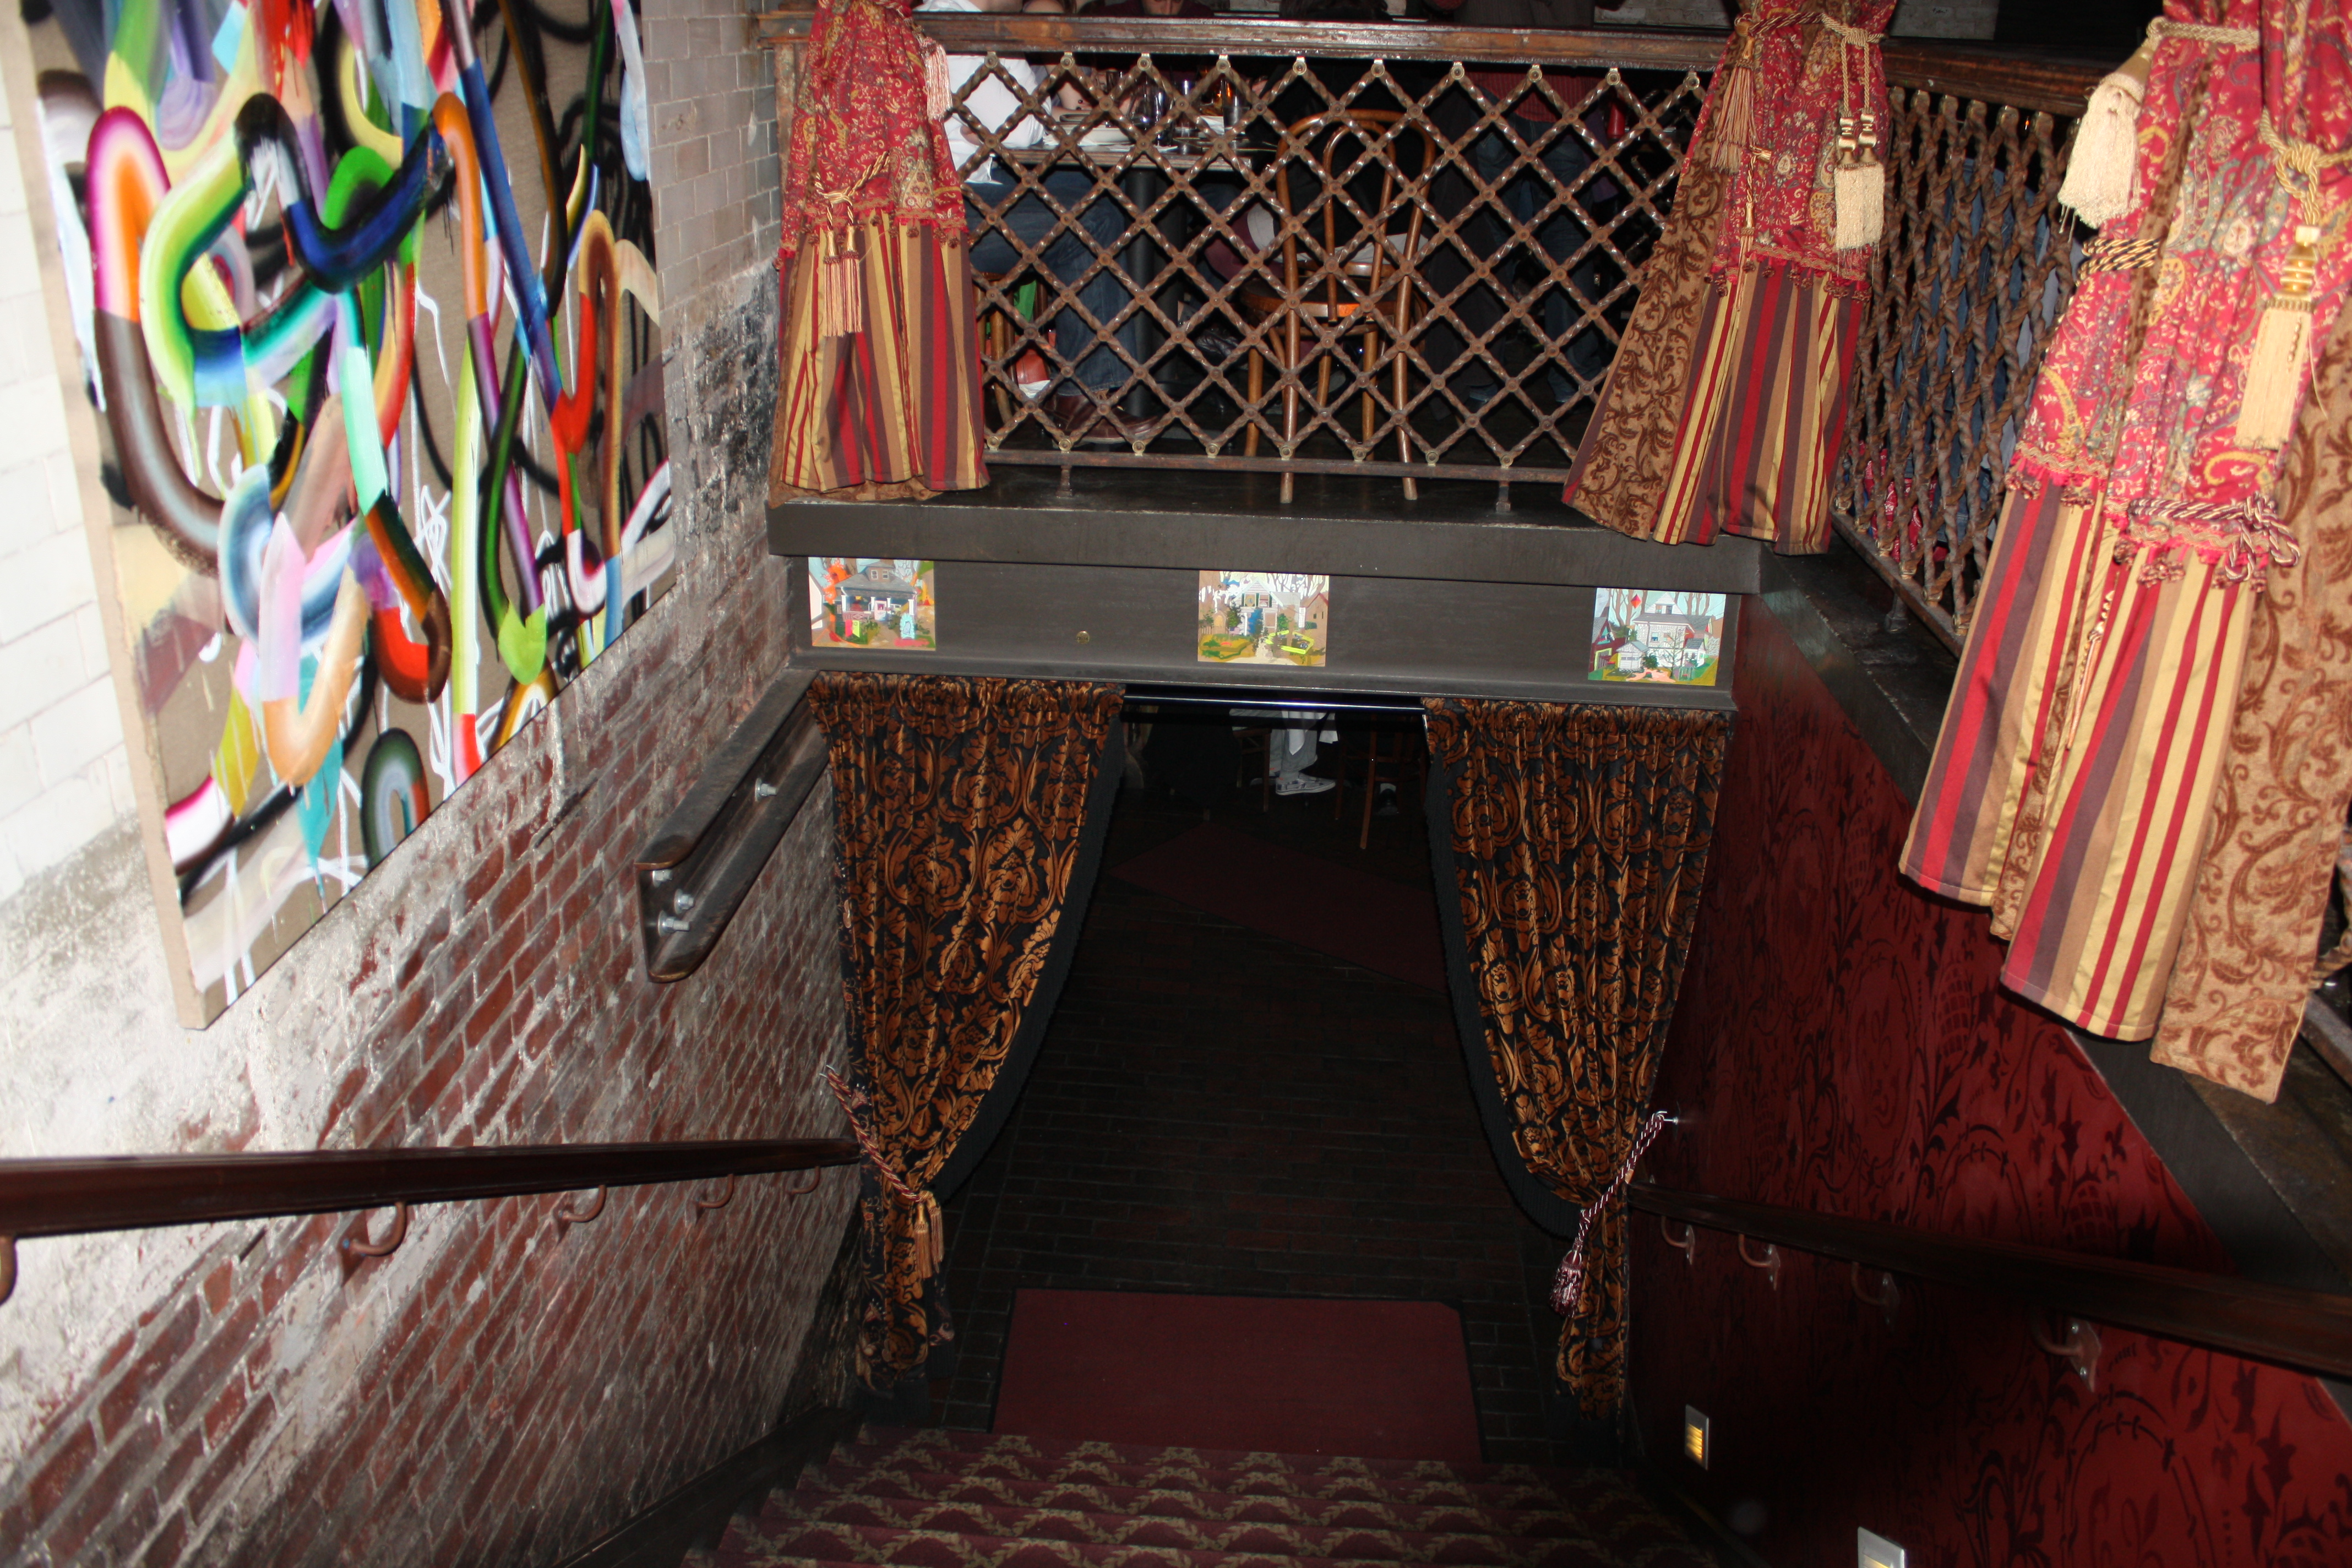 The Beehive oozes cool with the red and gold curtains, funky art and its  cavernous space.